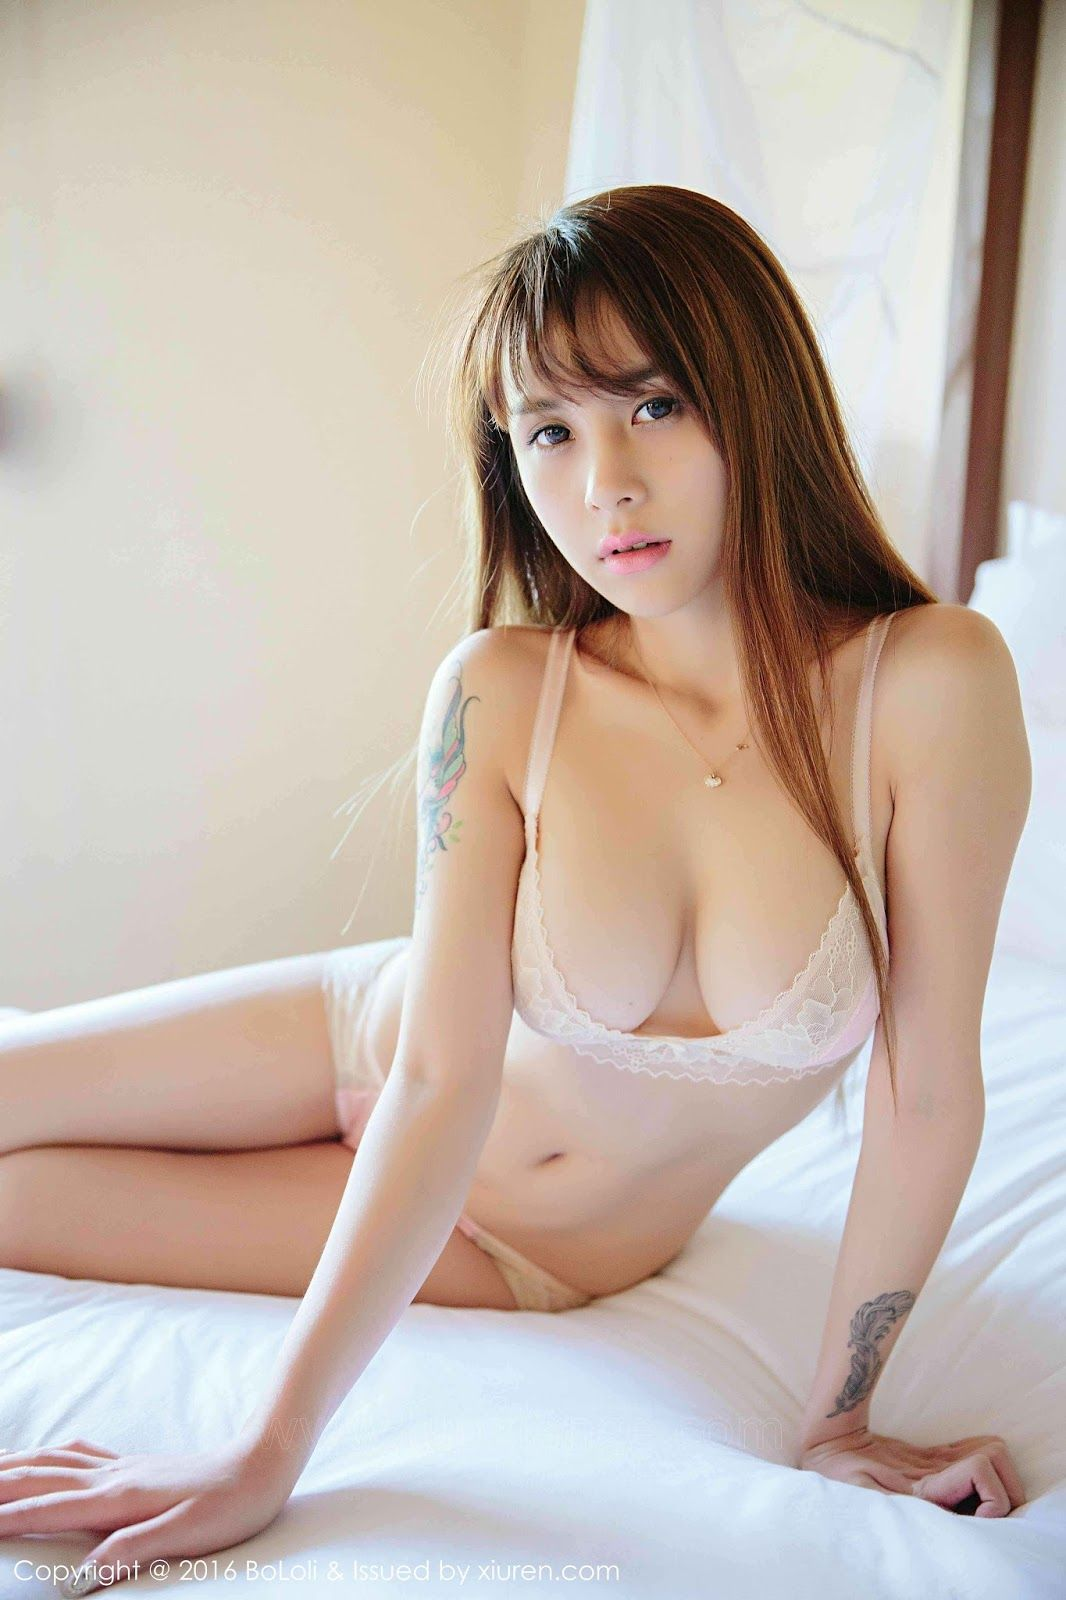 Free pictures of naked older women